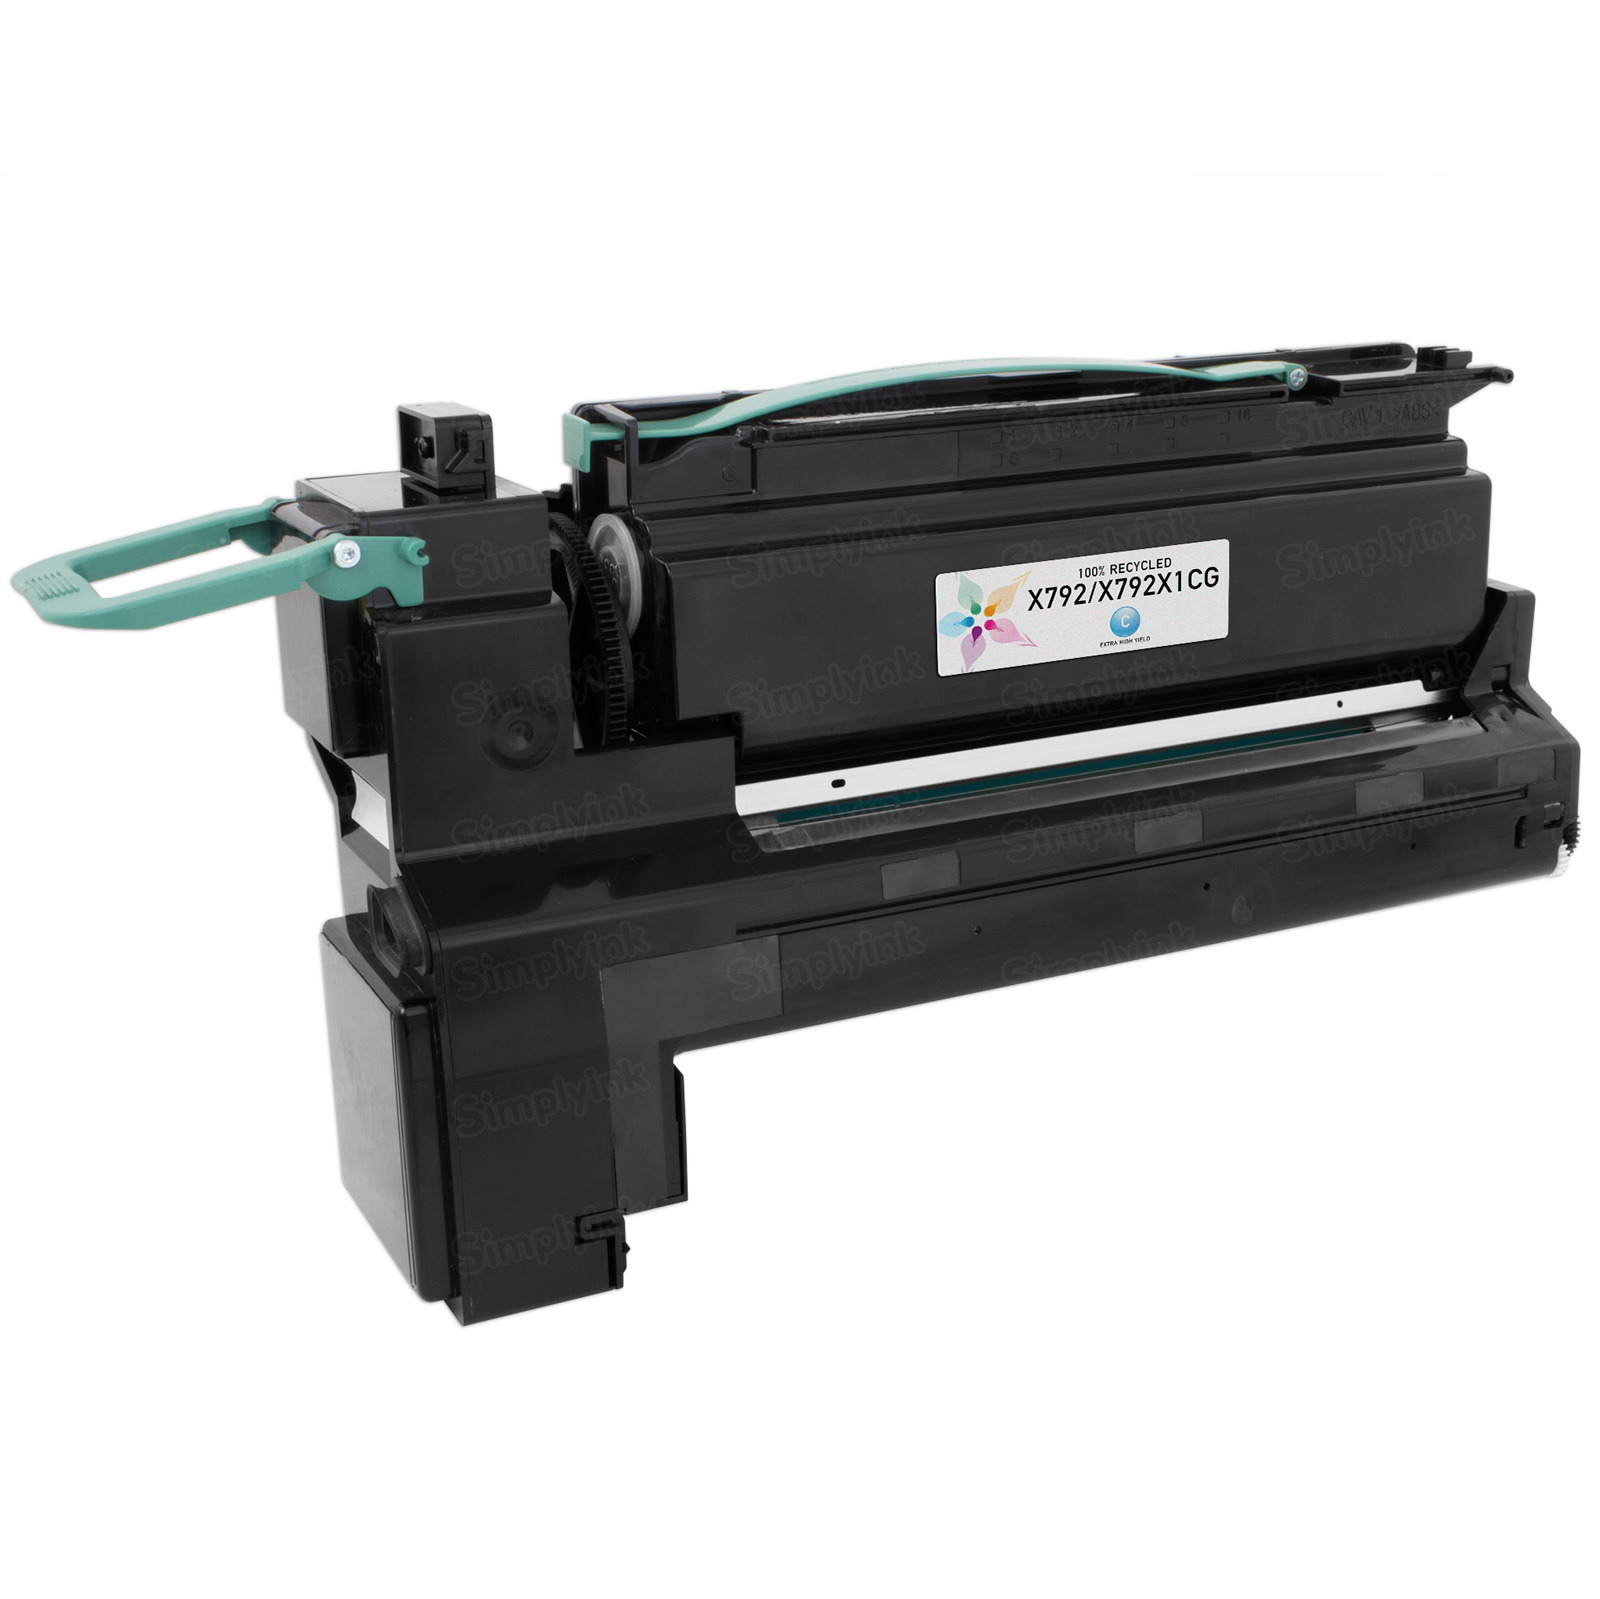 Lexmark Remanufactured Extra HY Cyan Toner, X792X1CG (X792)